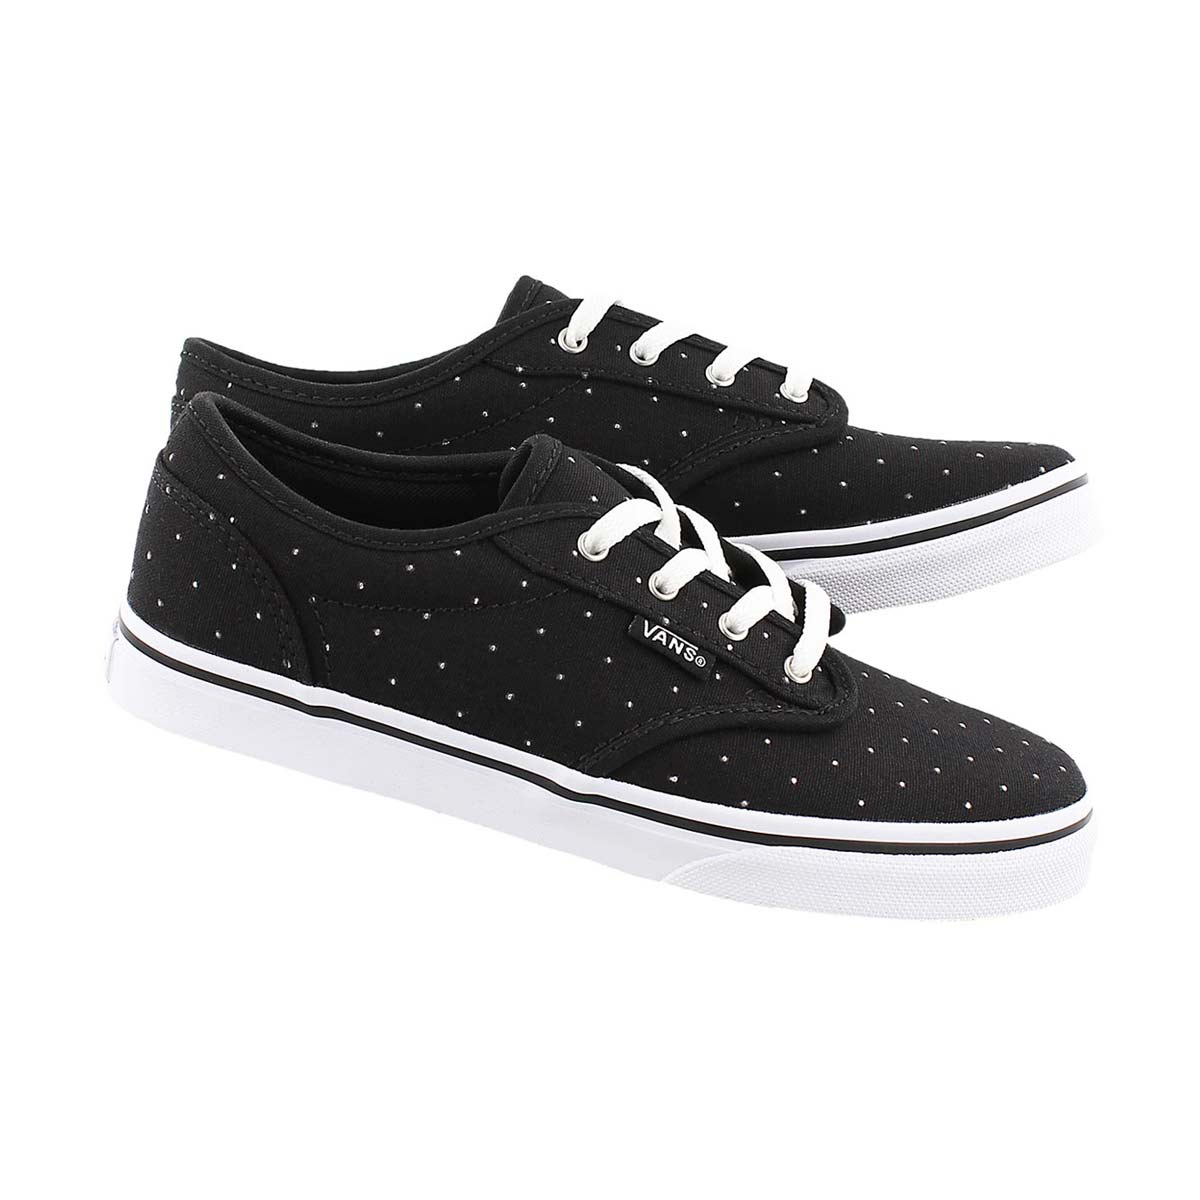 Grls Atwood Low blk stud lace up sneaker